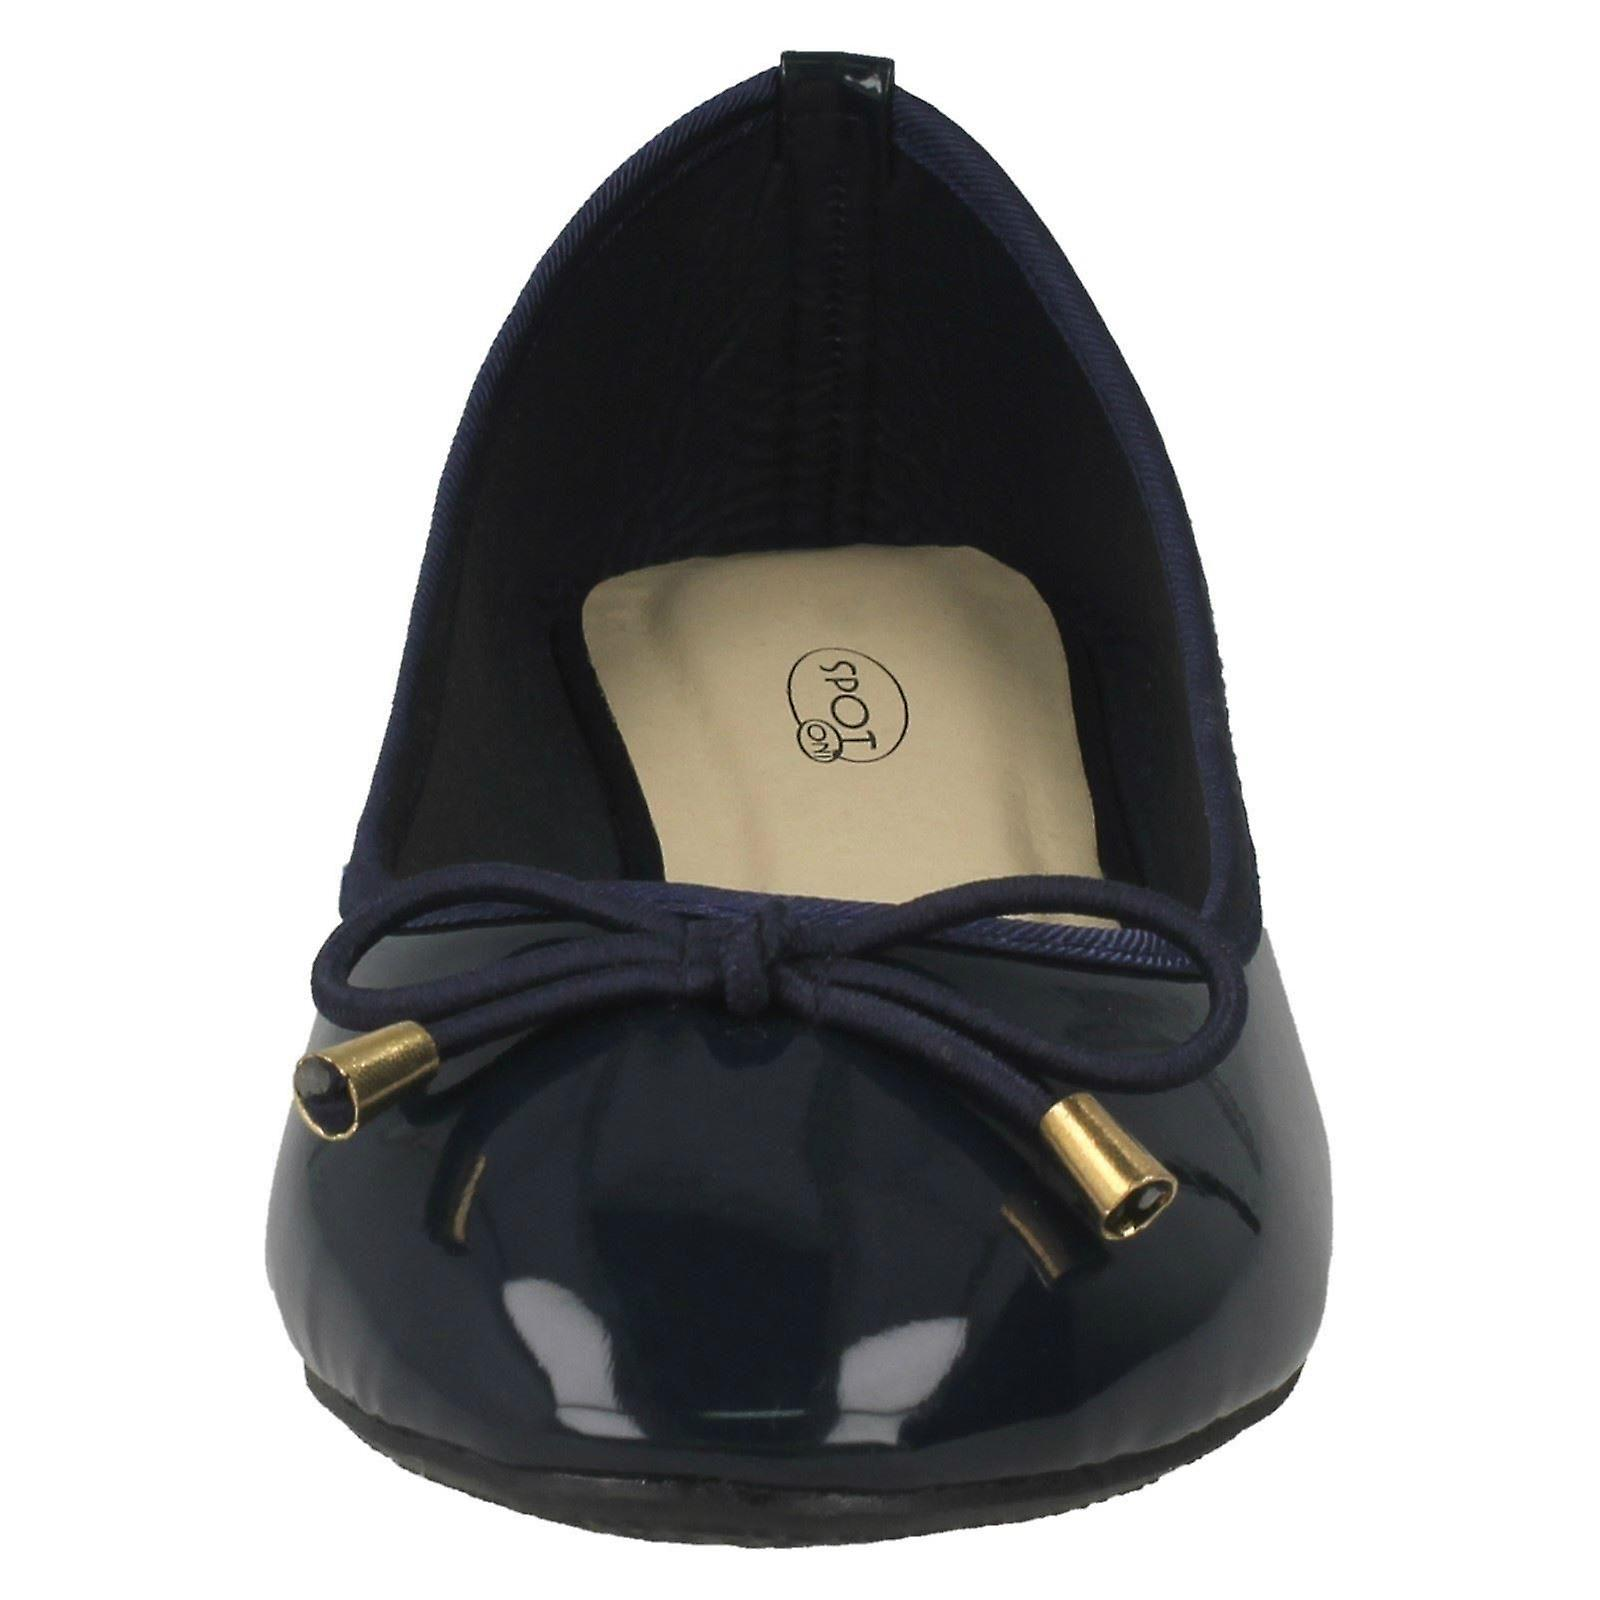 Ladies Spot On Patent Ballerina Shoes F80388 - Navy Synthetic Synthetic Synthetic Patent - UK Size 5 - EU Size 38 - US Size 7 686cea